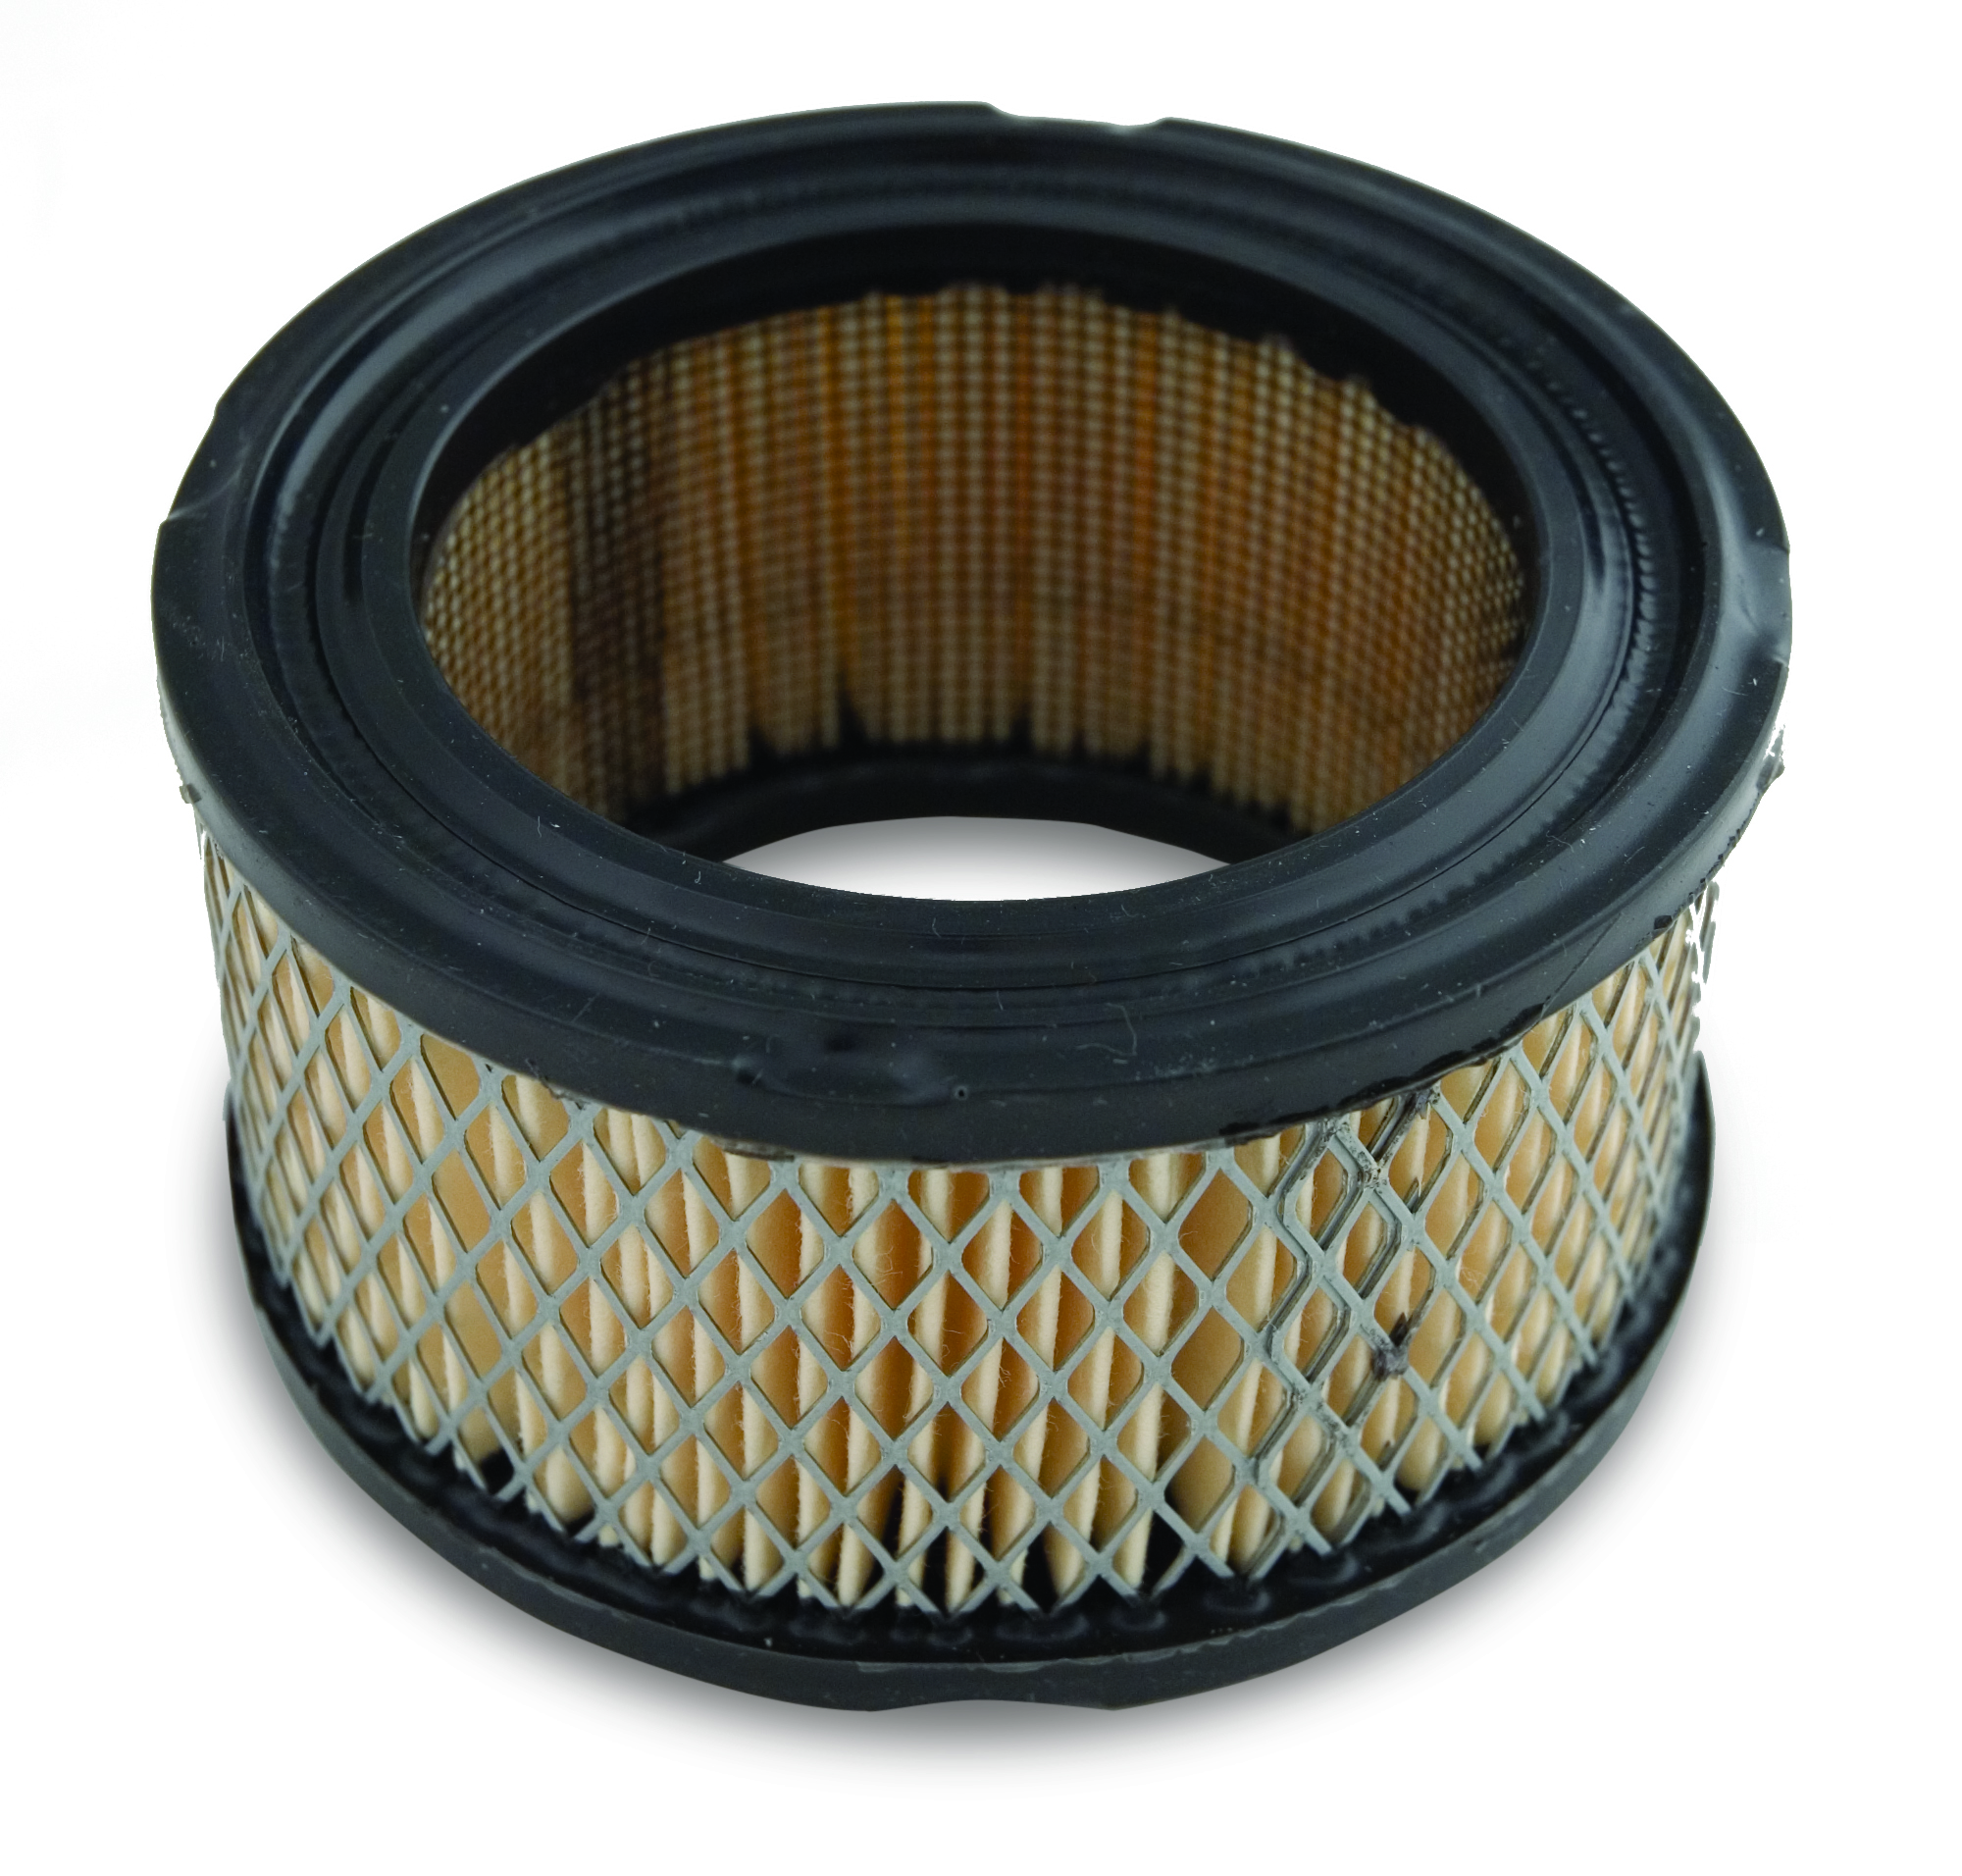 Air Filter Shop Pack For Kohler # 25-883-01-S 2588301S